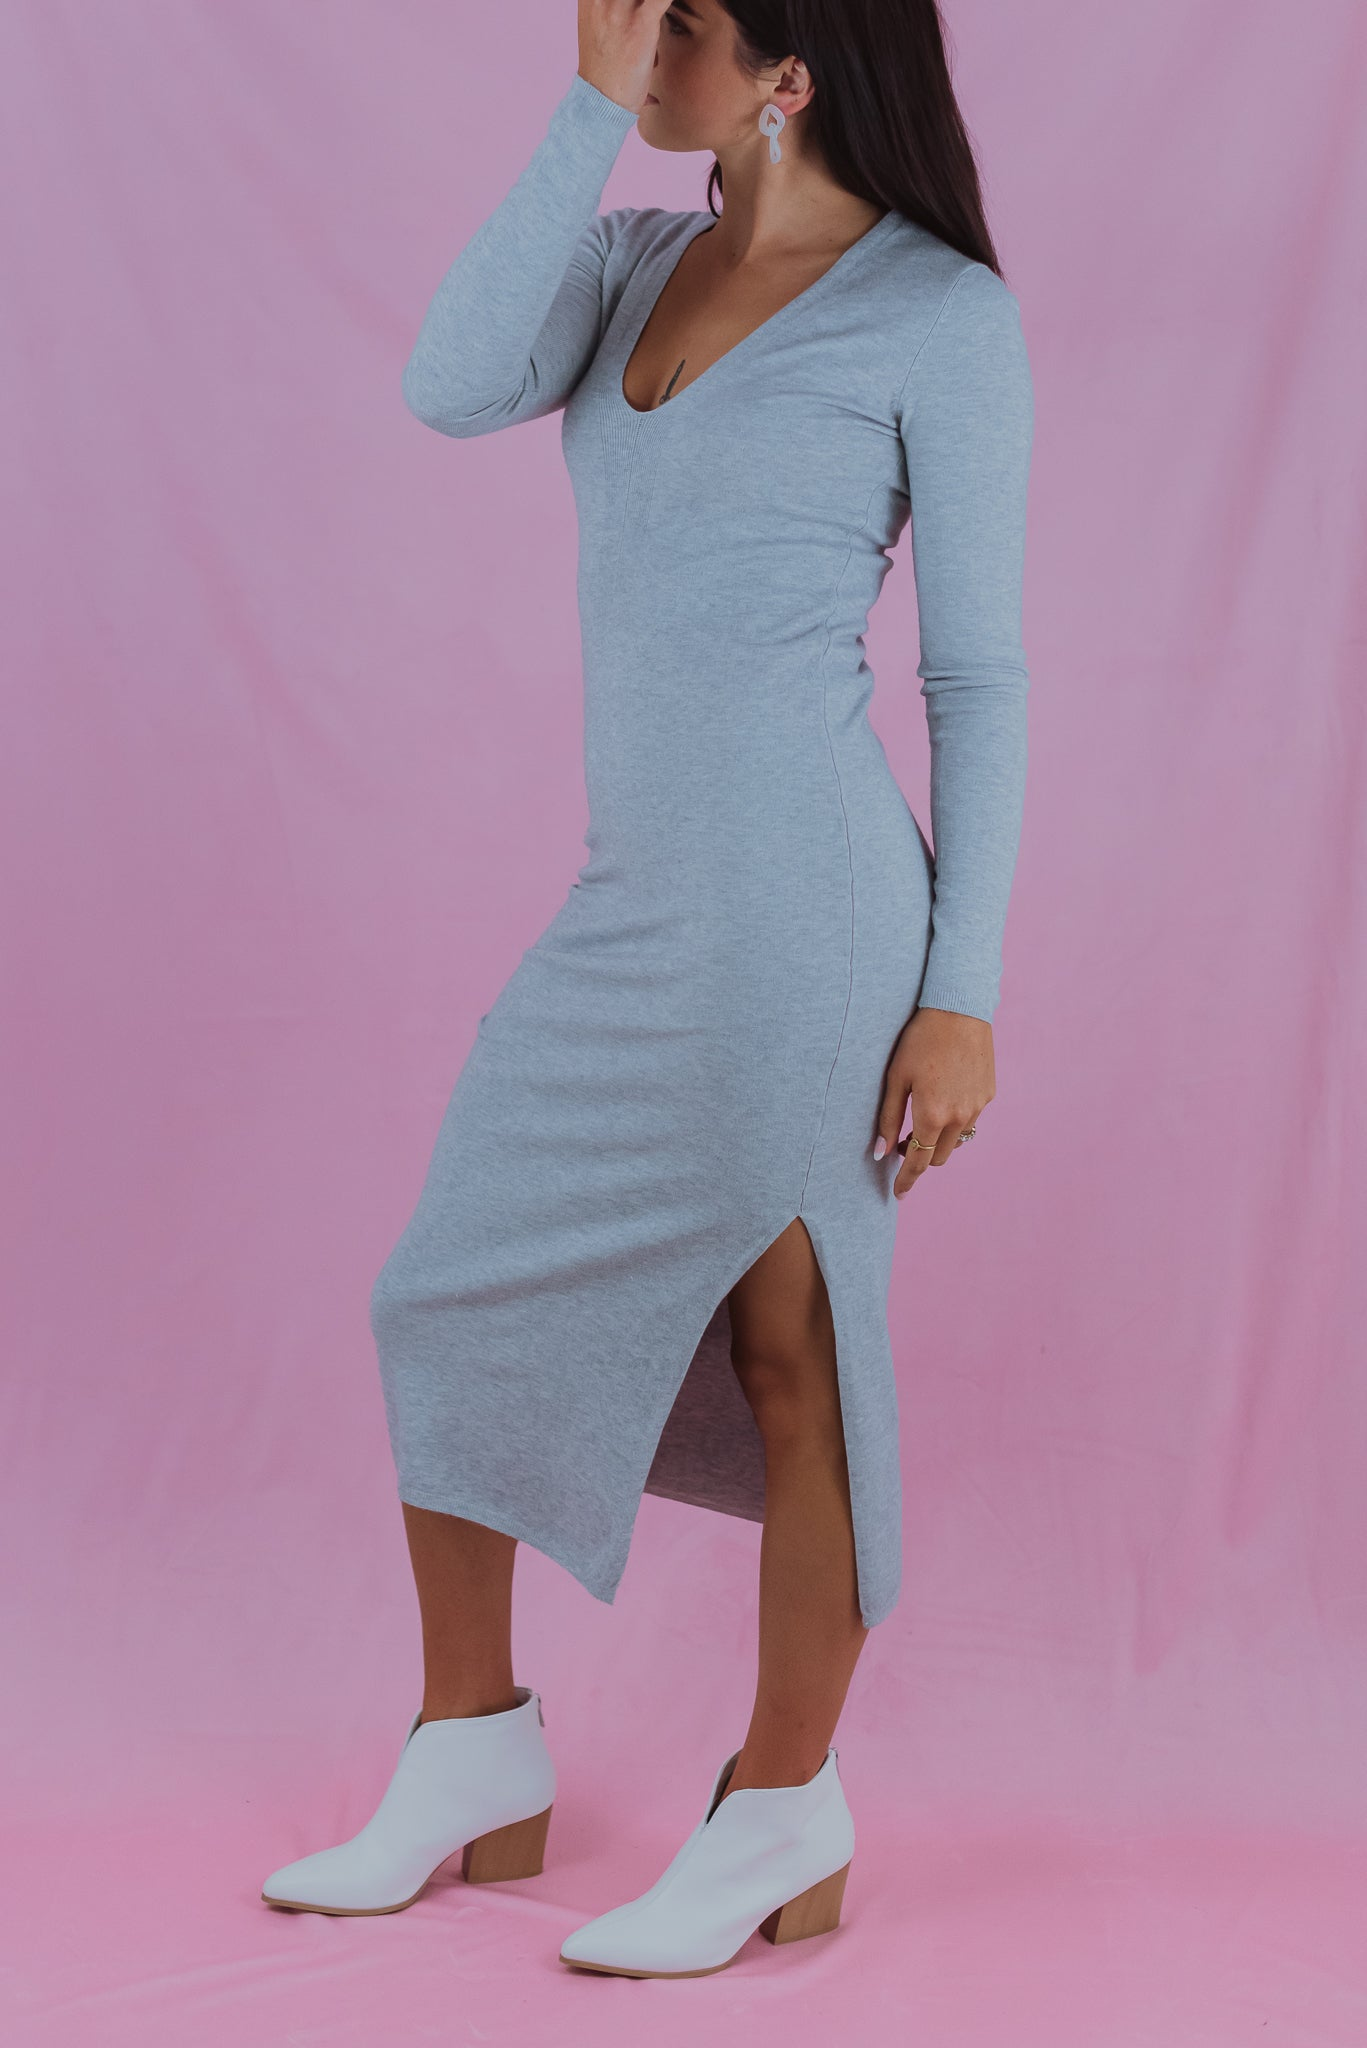 •sold out• Fall Bucket List V-Neck Sweater Dress